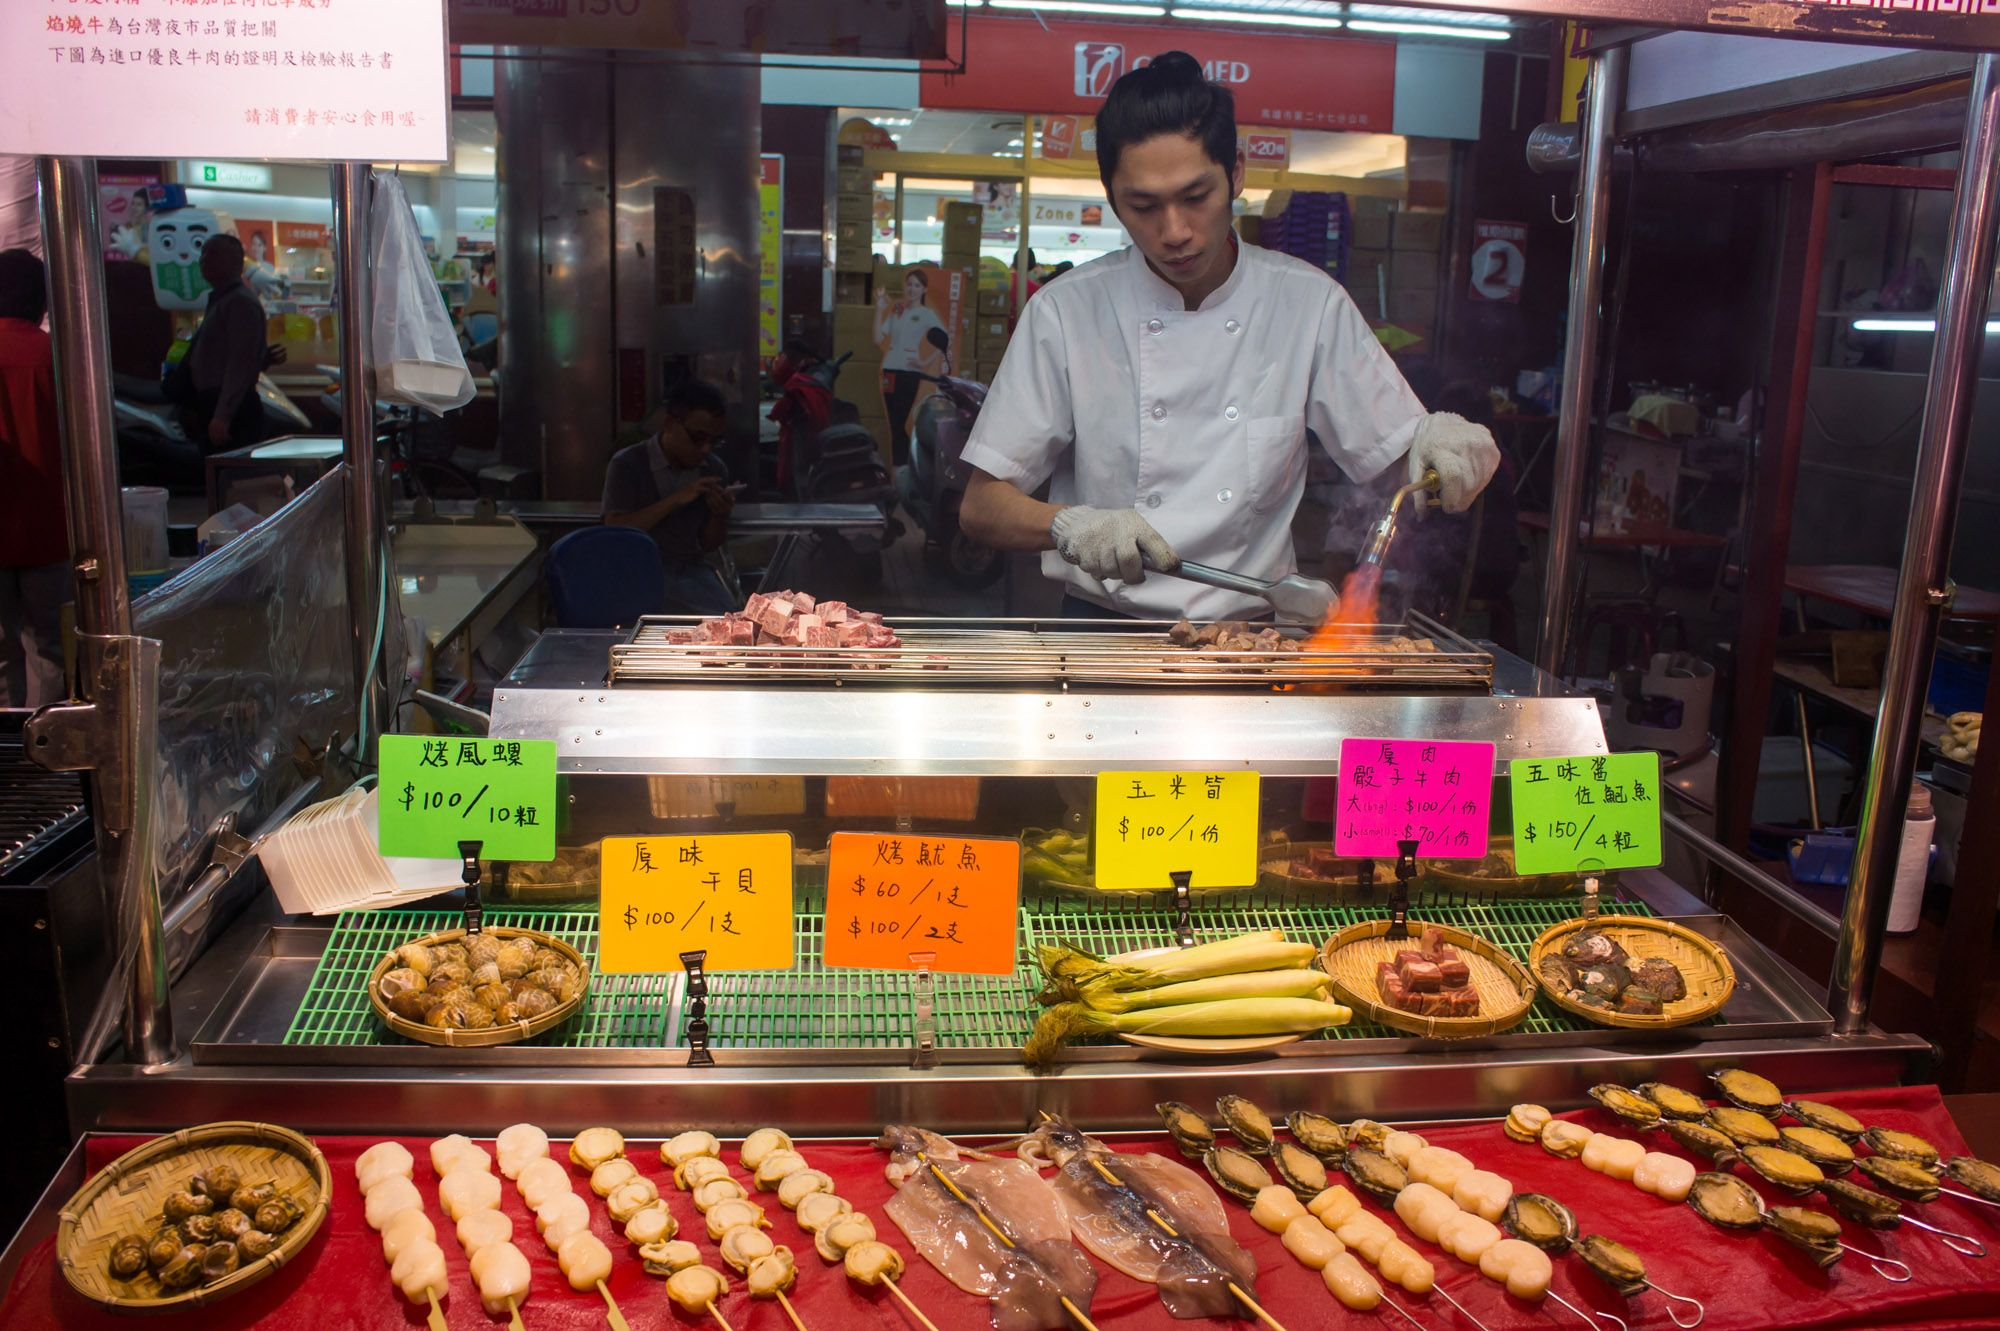 taiwan, night market, food